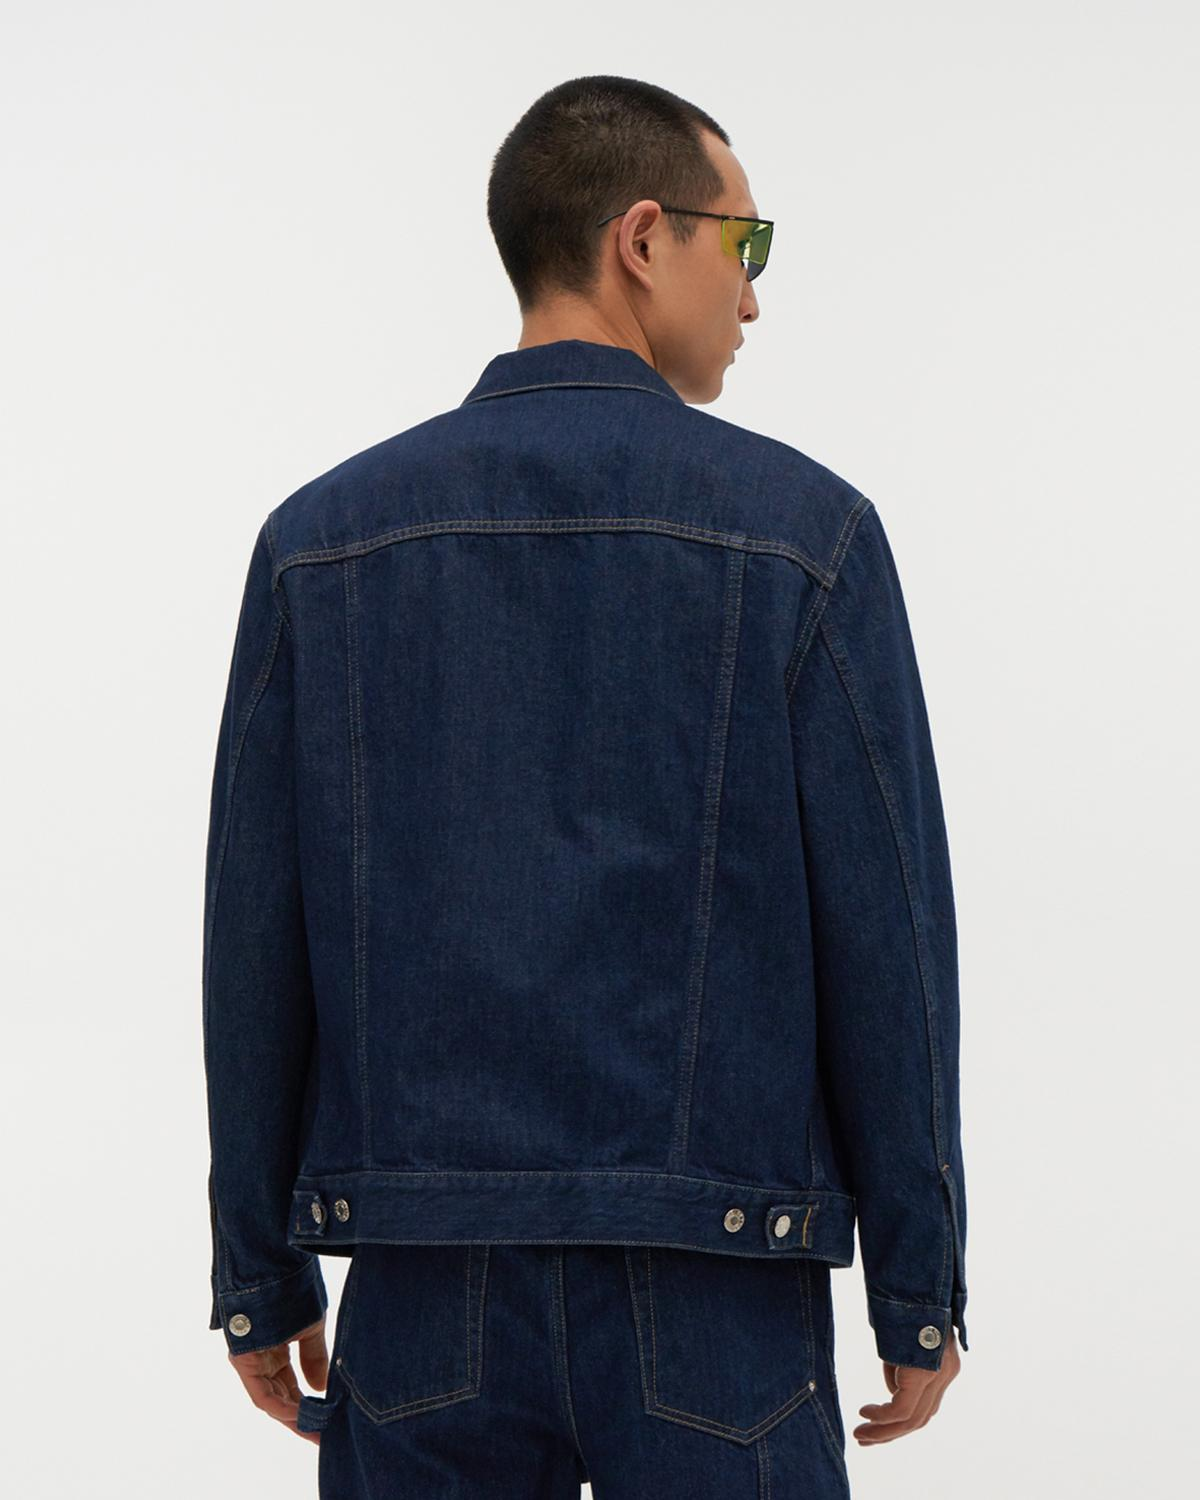 Industry Masc Big Trucker Jean Jacket